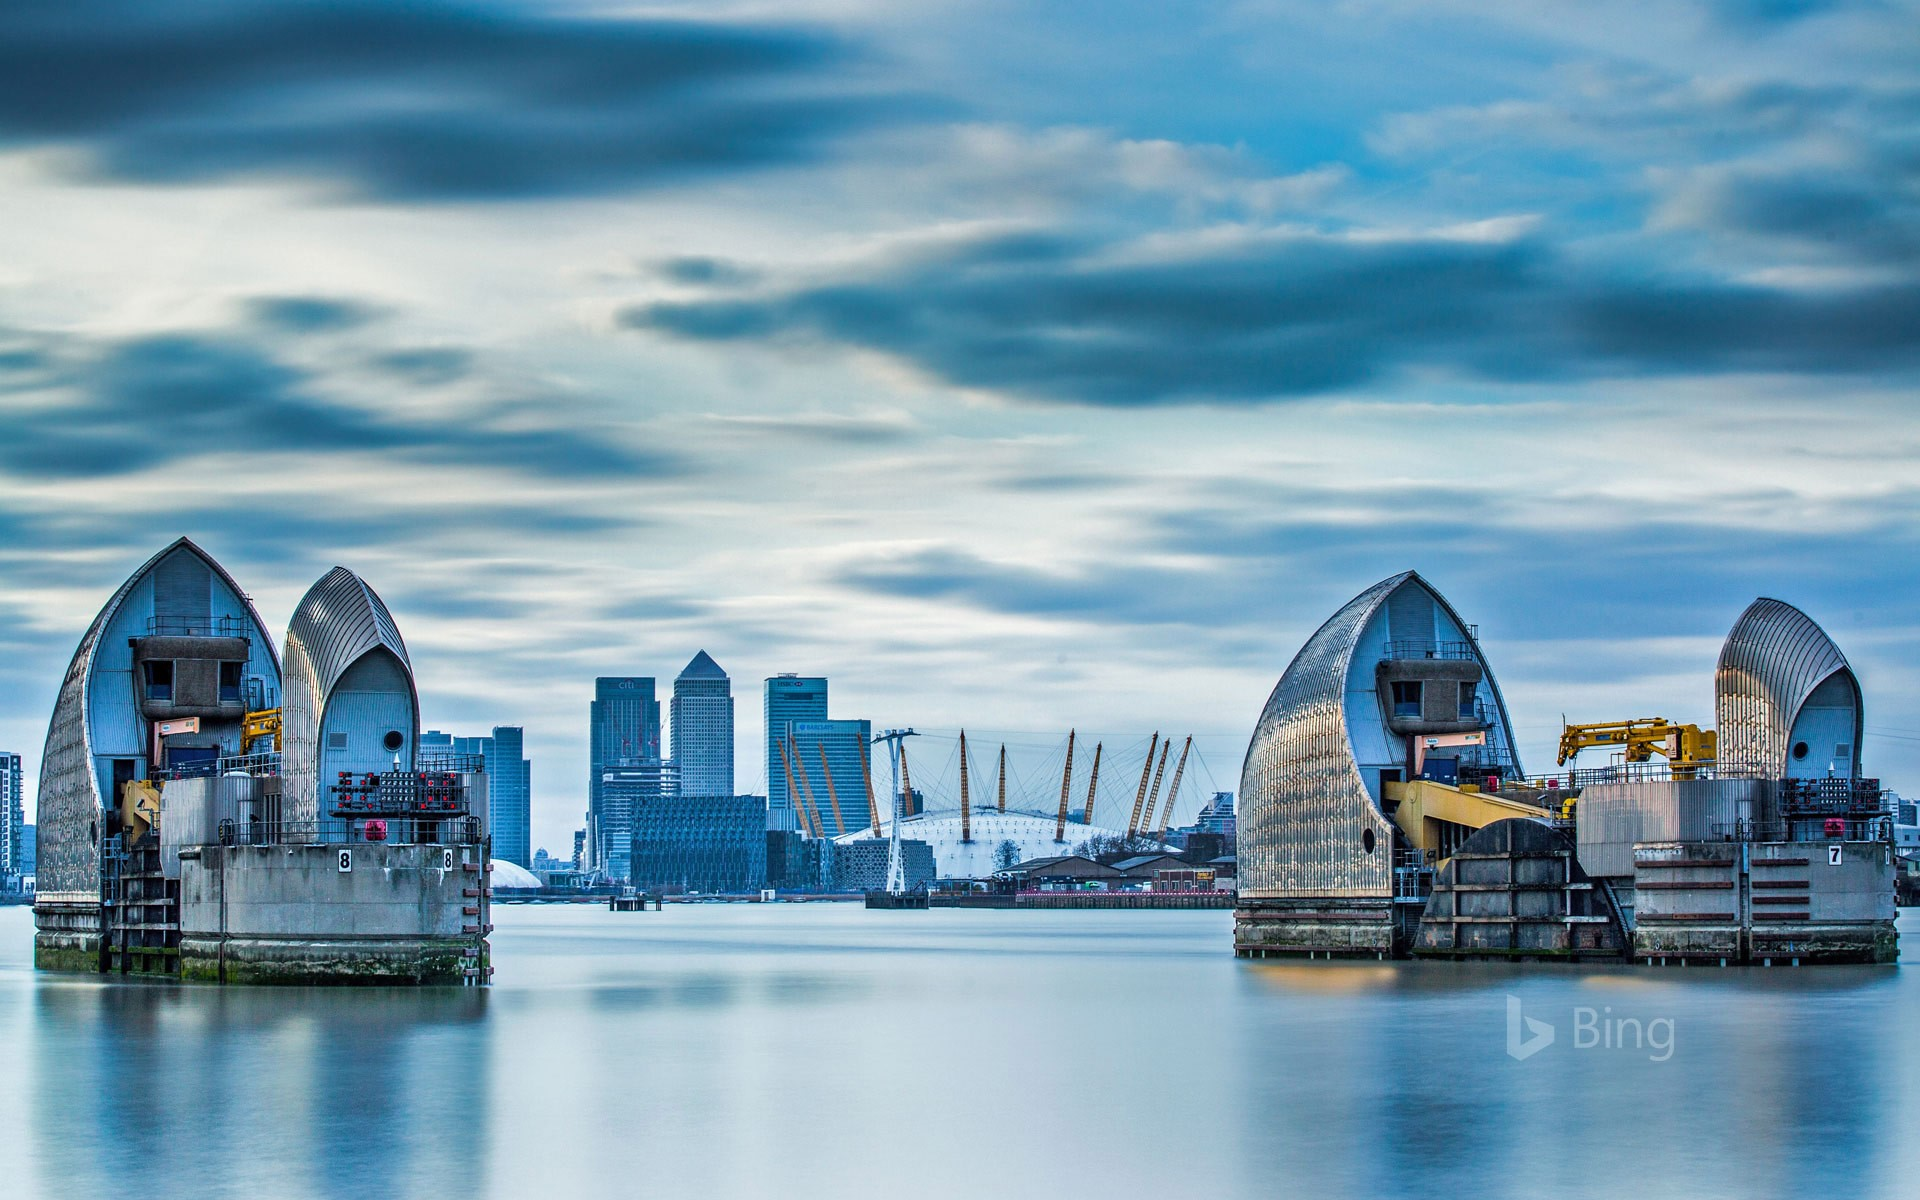 The Thames Barrier in London